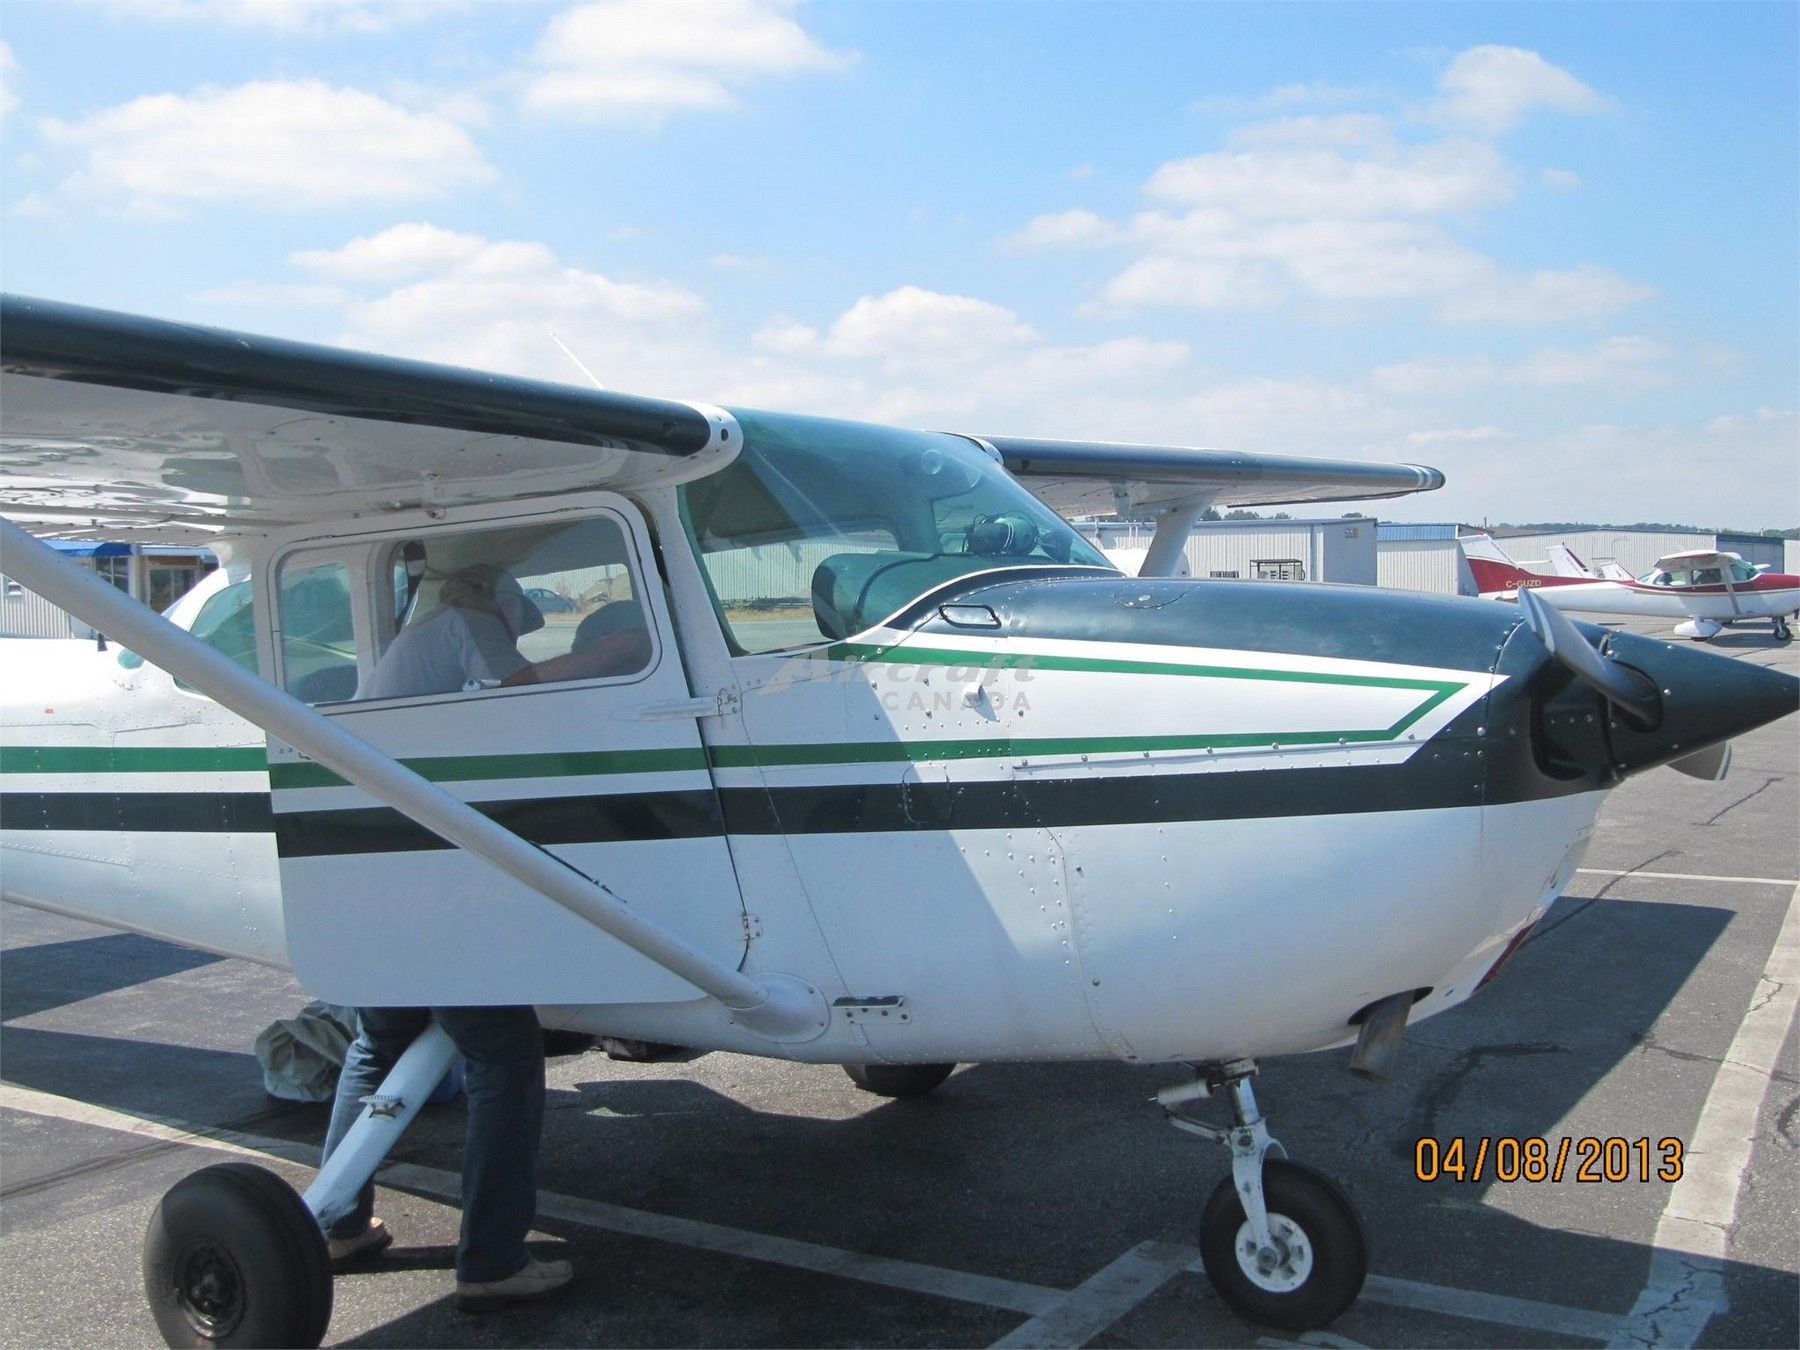 1974 Cessna 172M for sale in Vancouver, BC Canada => http